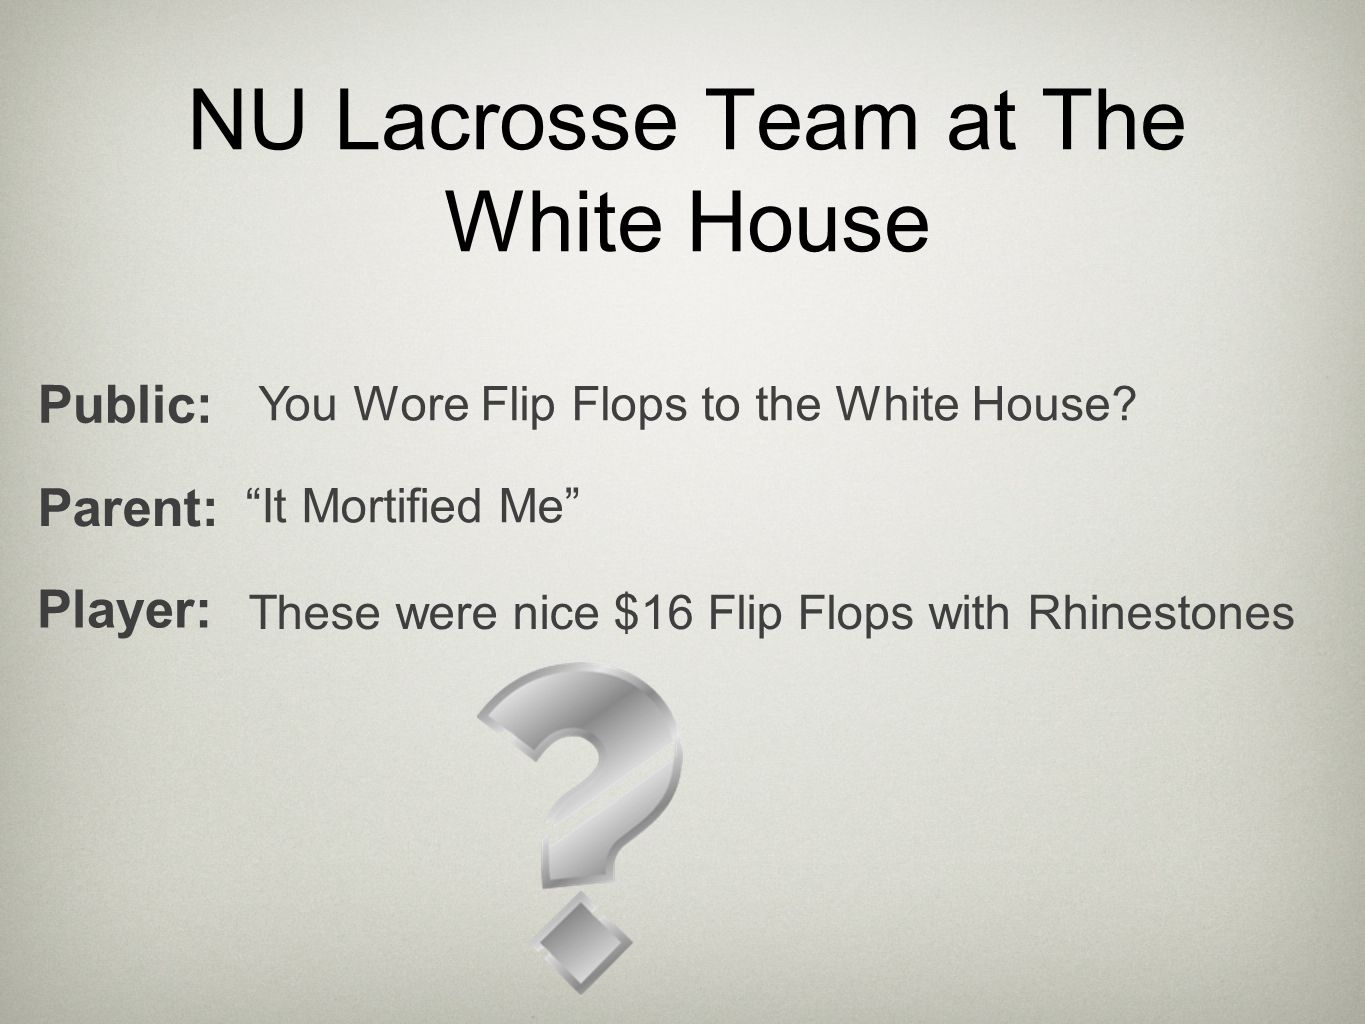 NU Lacrosse Team at The White House You Wore Flip Flops to the White House.